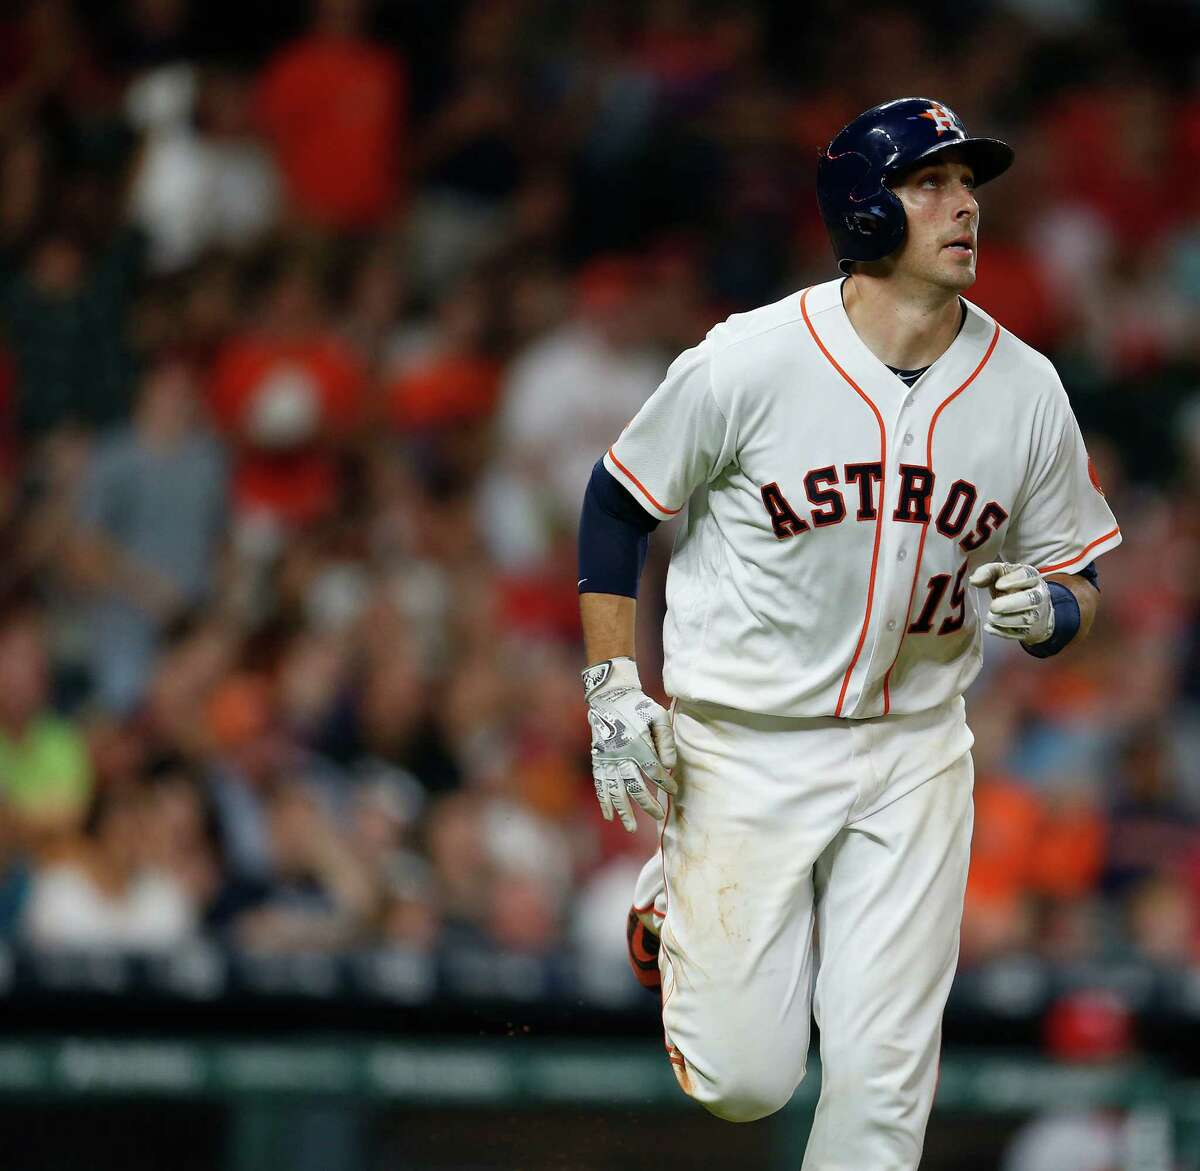 Jason Castro played six seasons with the Astros after being a first-round draft pick in 2008.